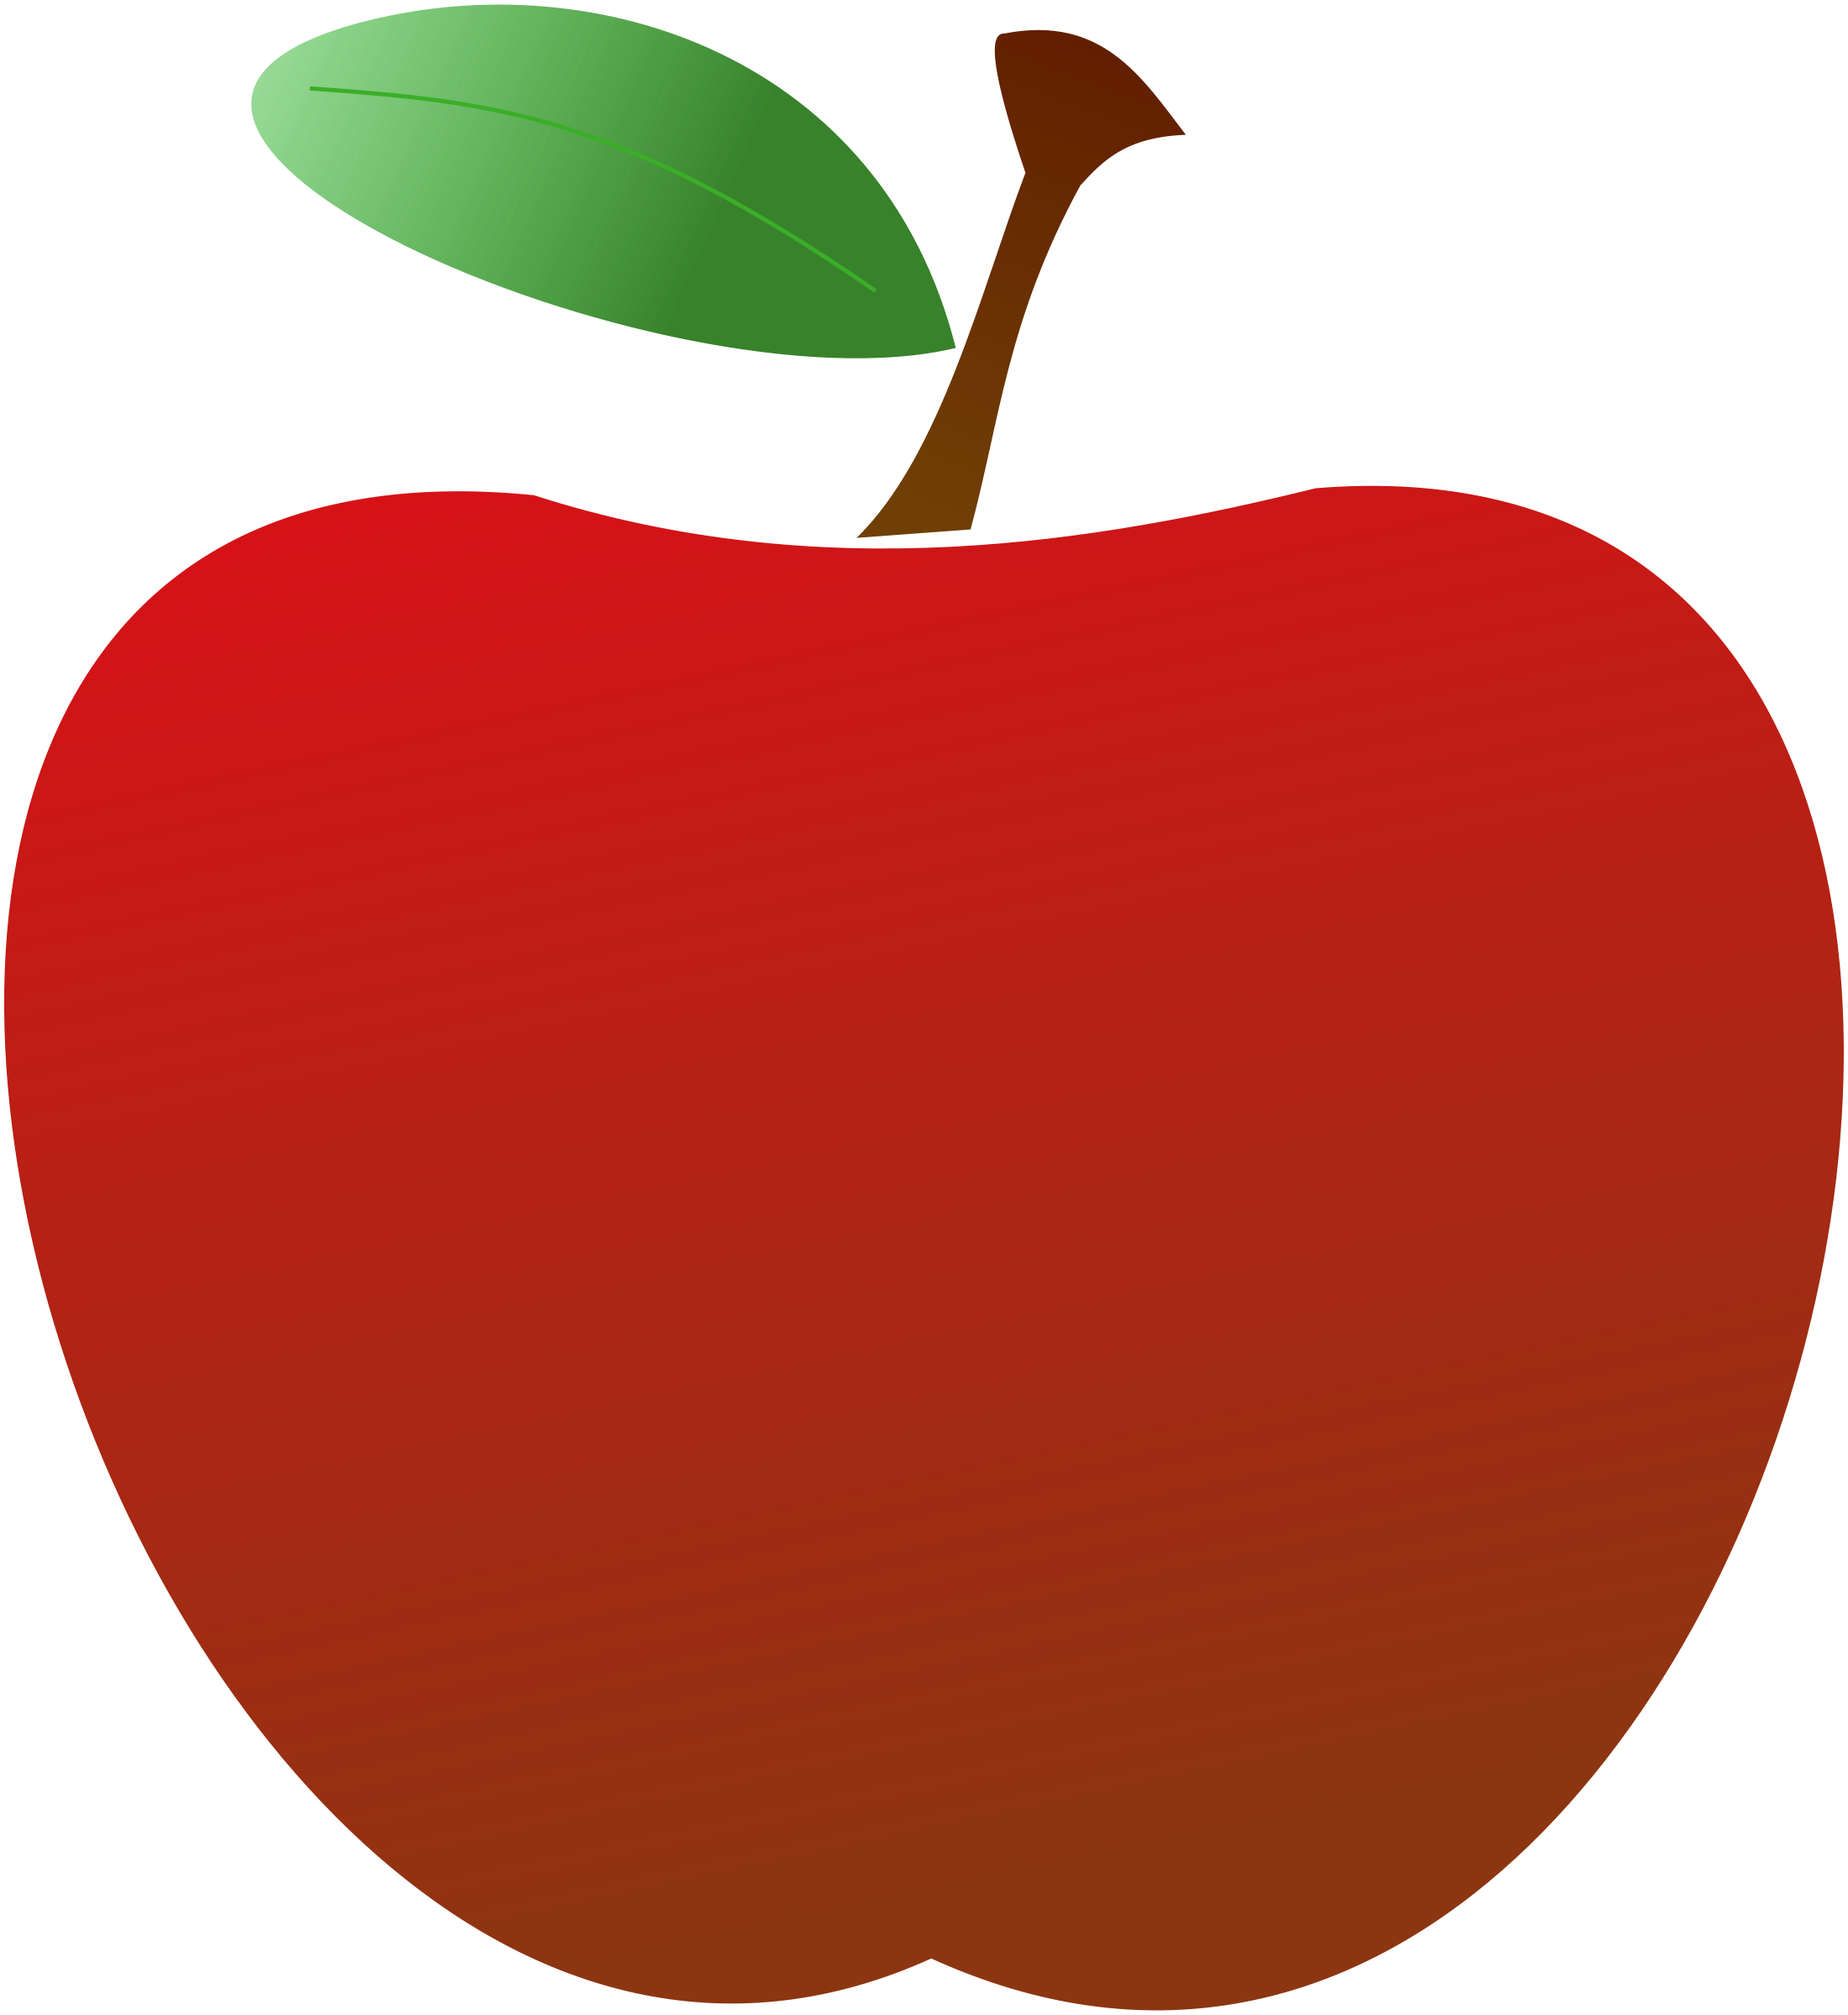 Apple Clipart With No Background.